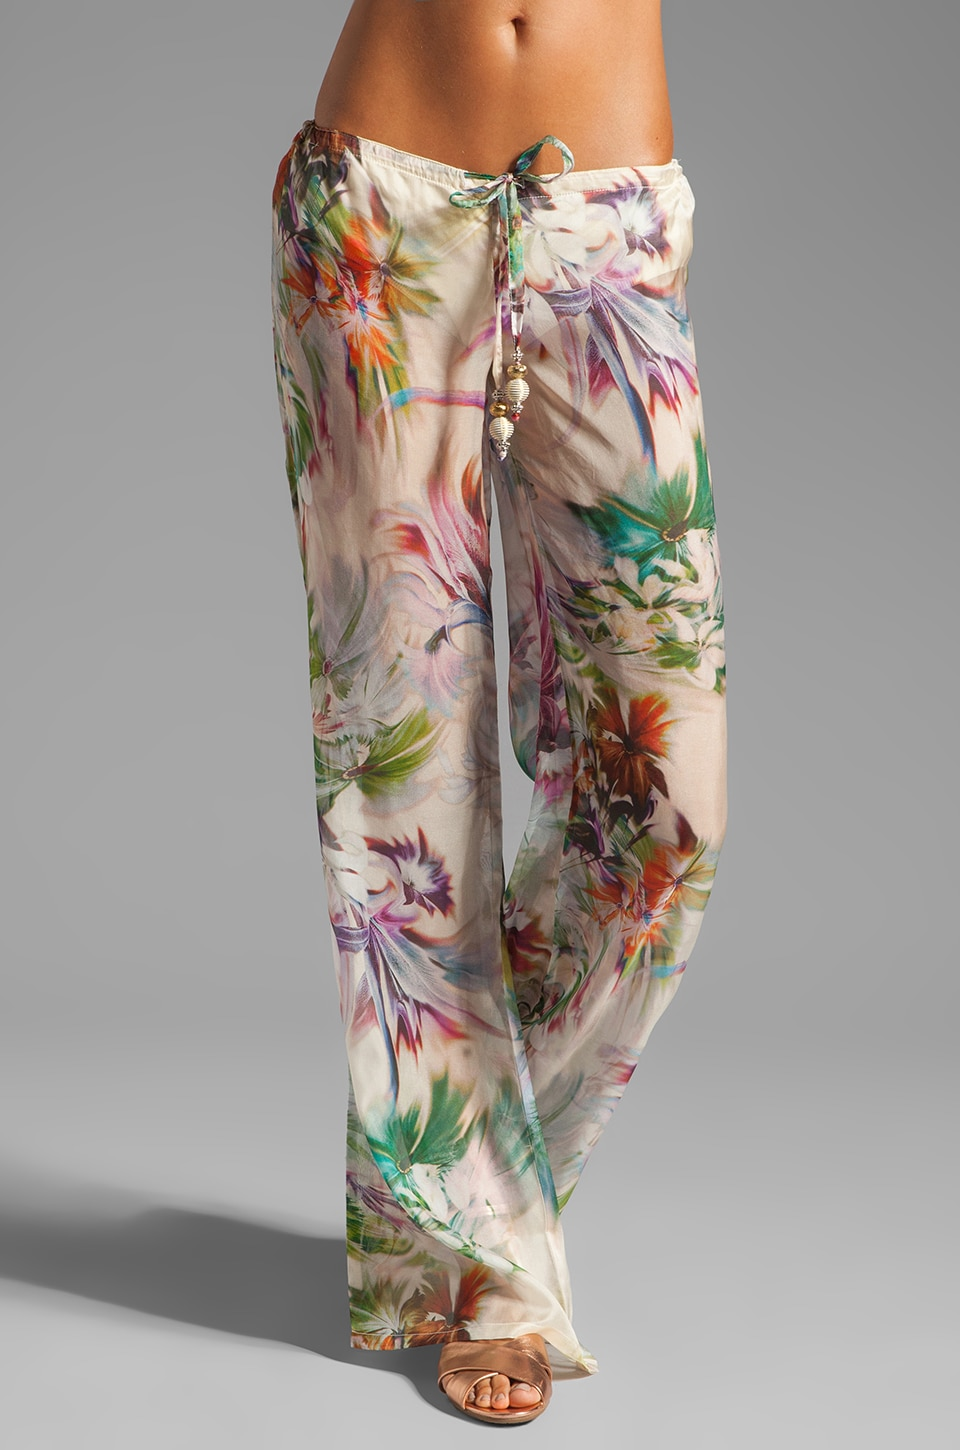 Beach Bunny Garden Party Pant in Tropical